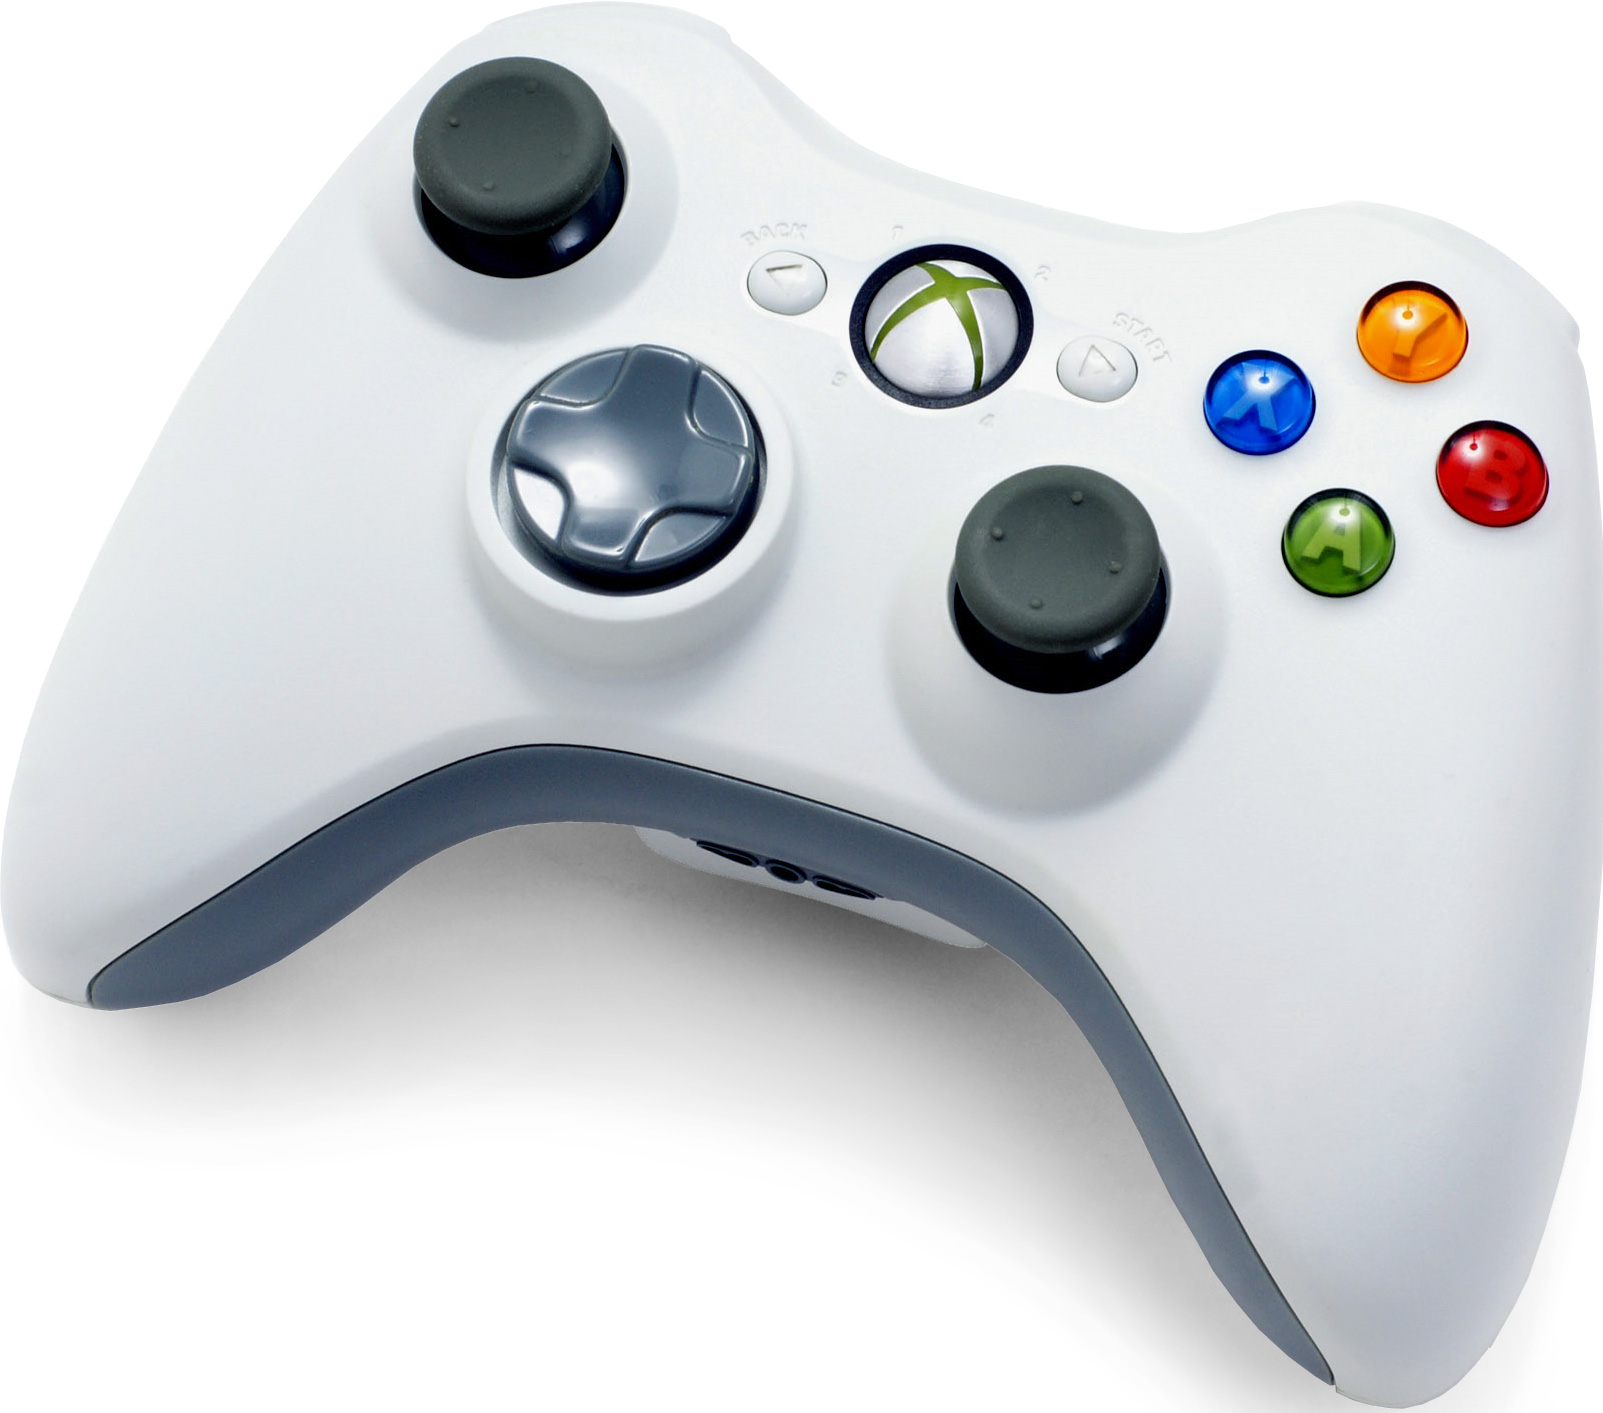 The five best PC gamepads | Stuff.co.nz